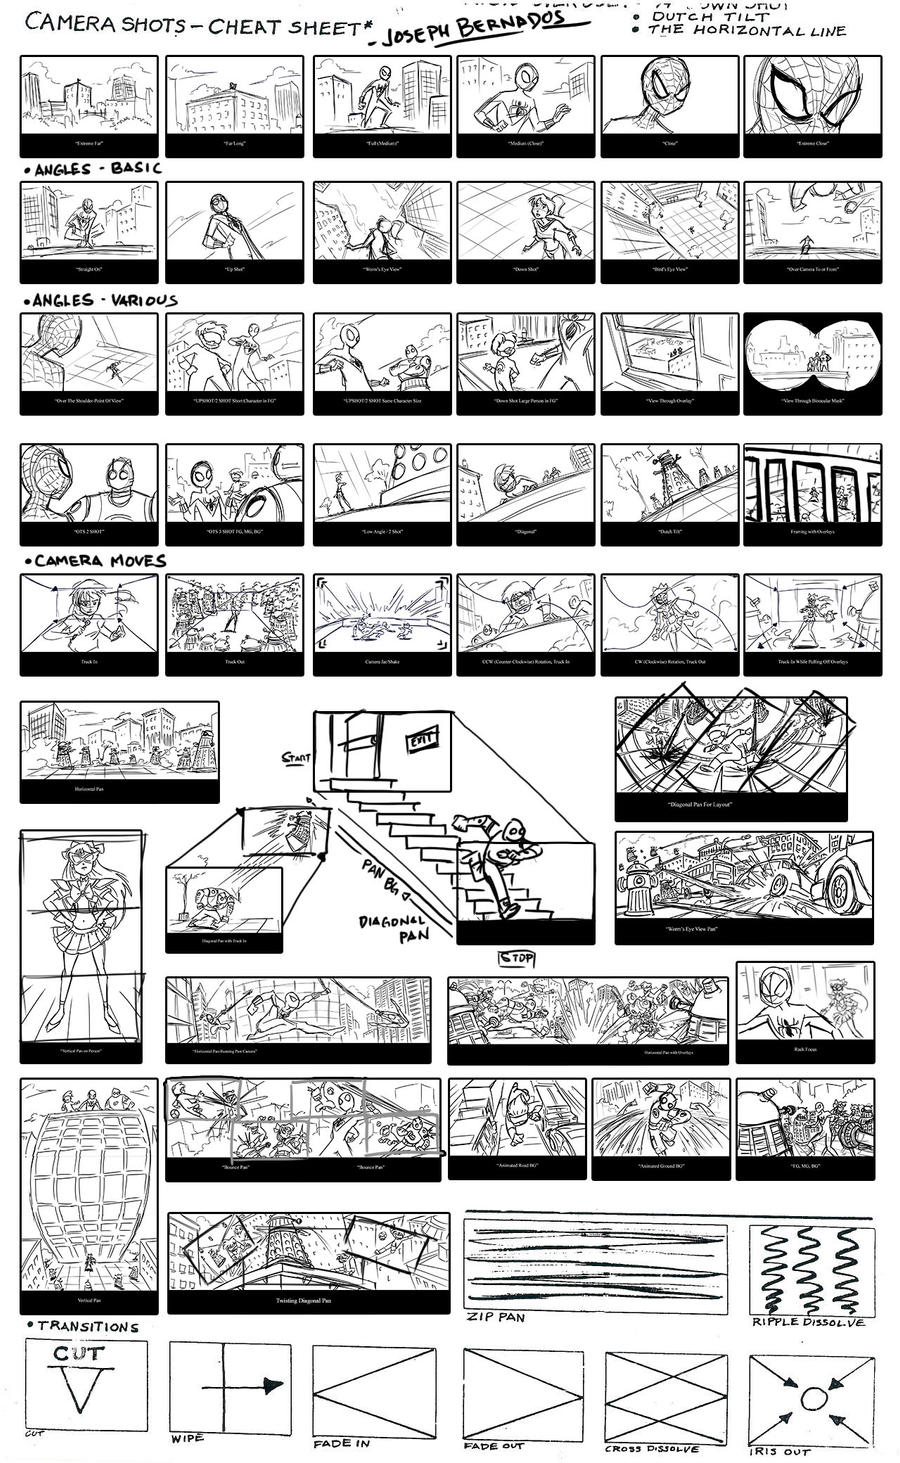 camera shots cheat sheet for storyboarding by windykid on deviantart. Black Bedroom Furniture Sets. Home Design Ideas